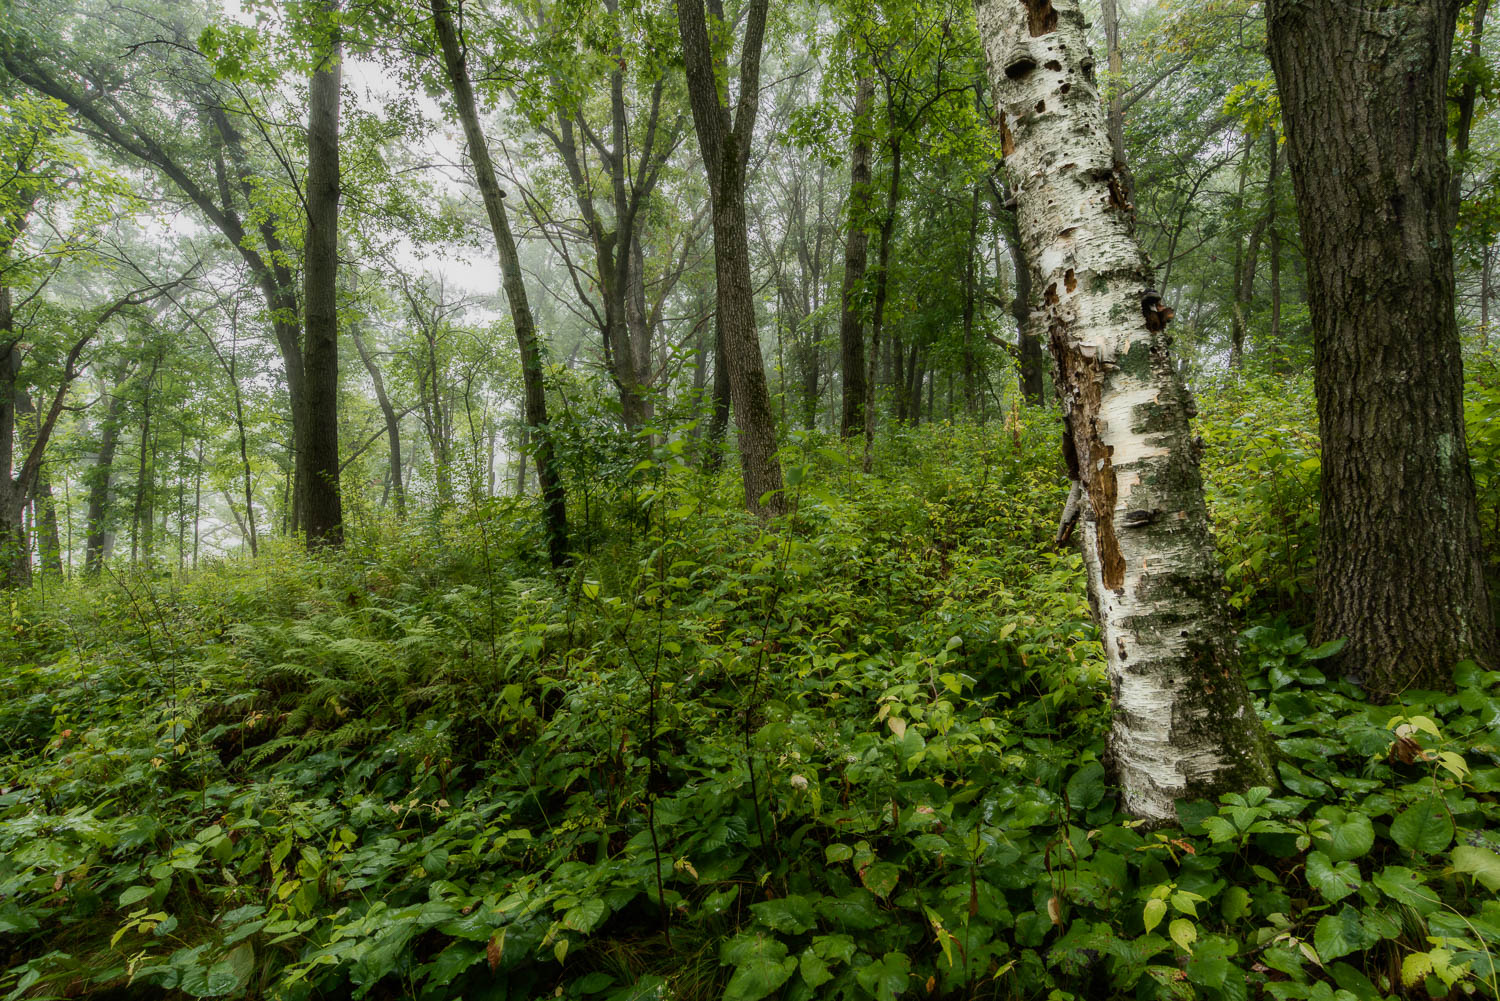 Foggy Forest  Nikon D810 + 16-35mm f/4 VR